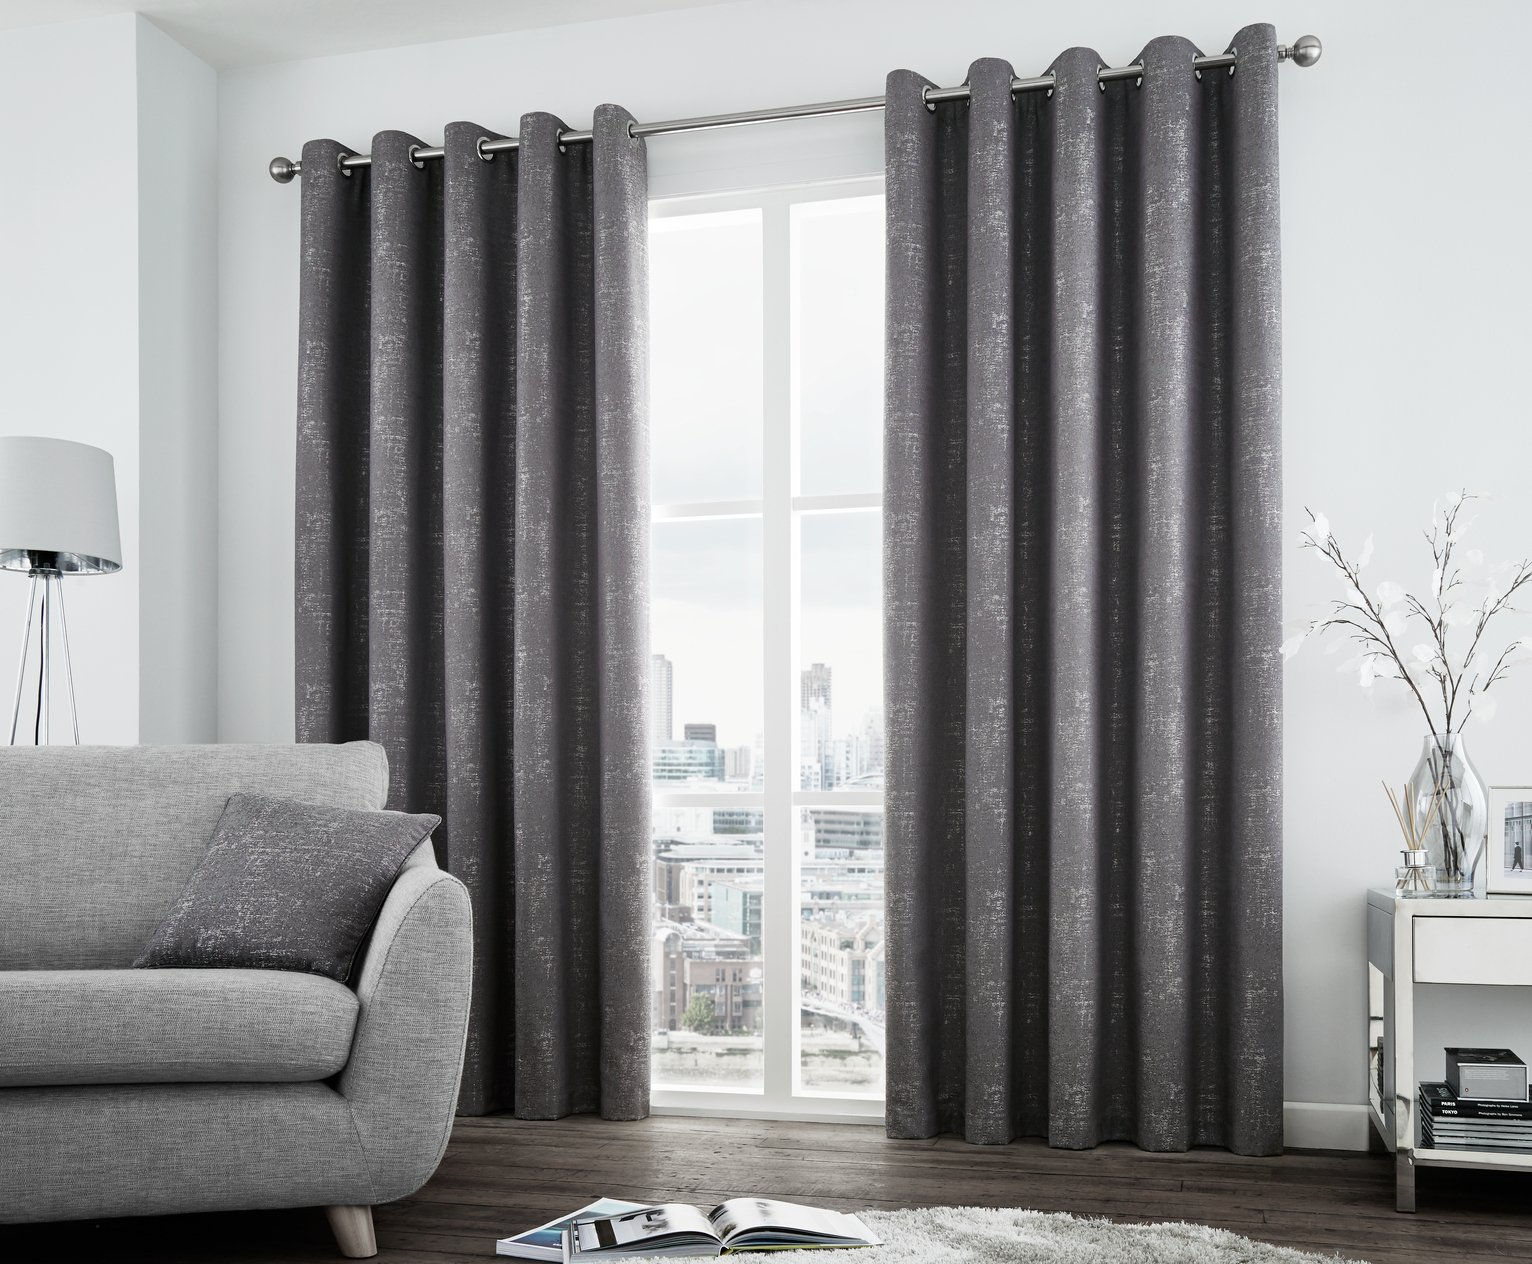 Curtina Solent Lined Curtains - 168x229cm - Graphite